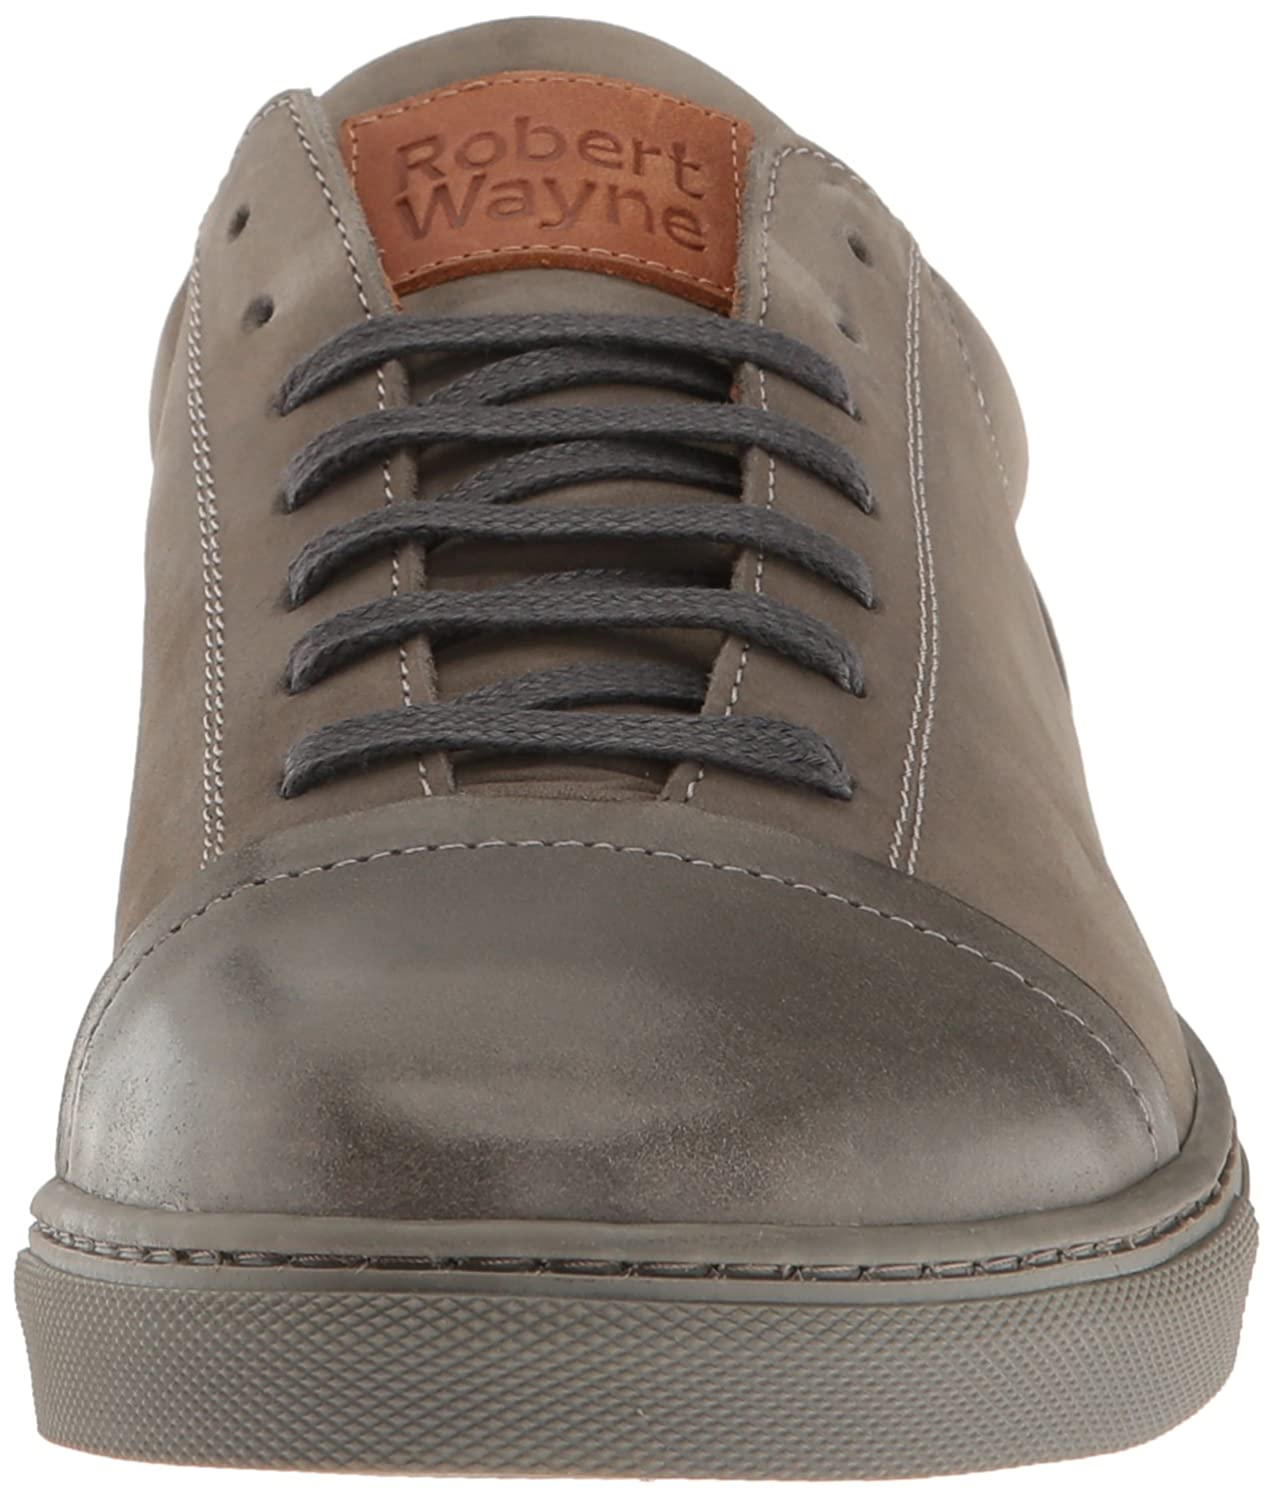 RW by Robert Wayne  Mens Dary Sneaker